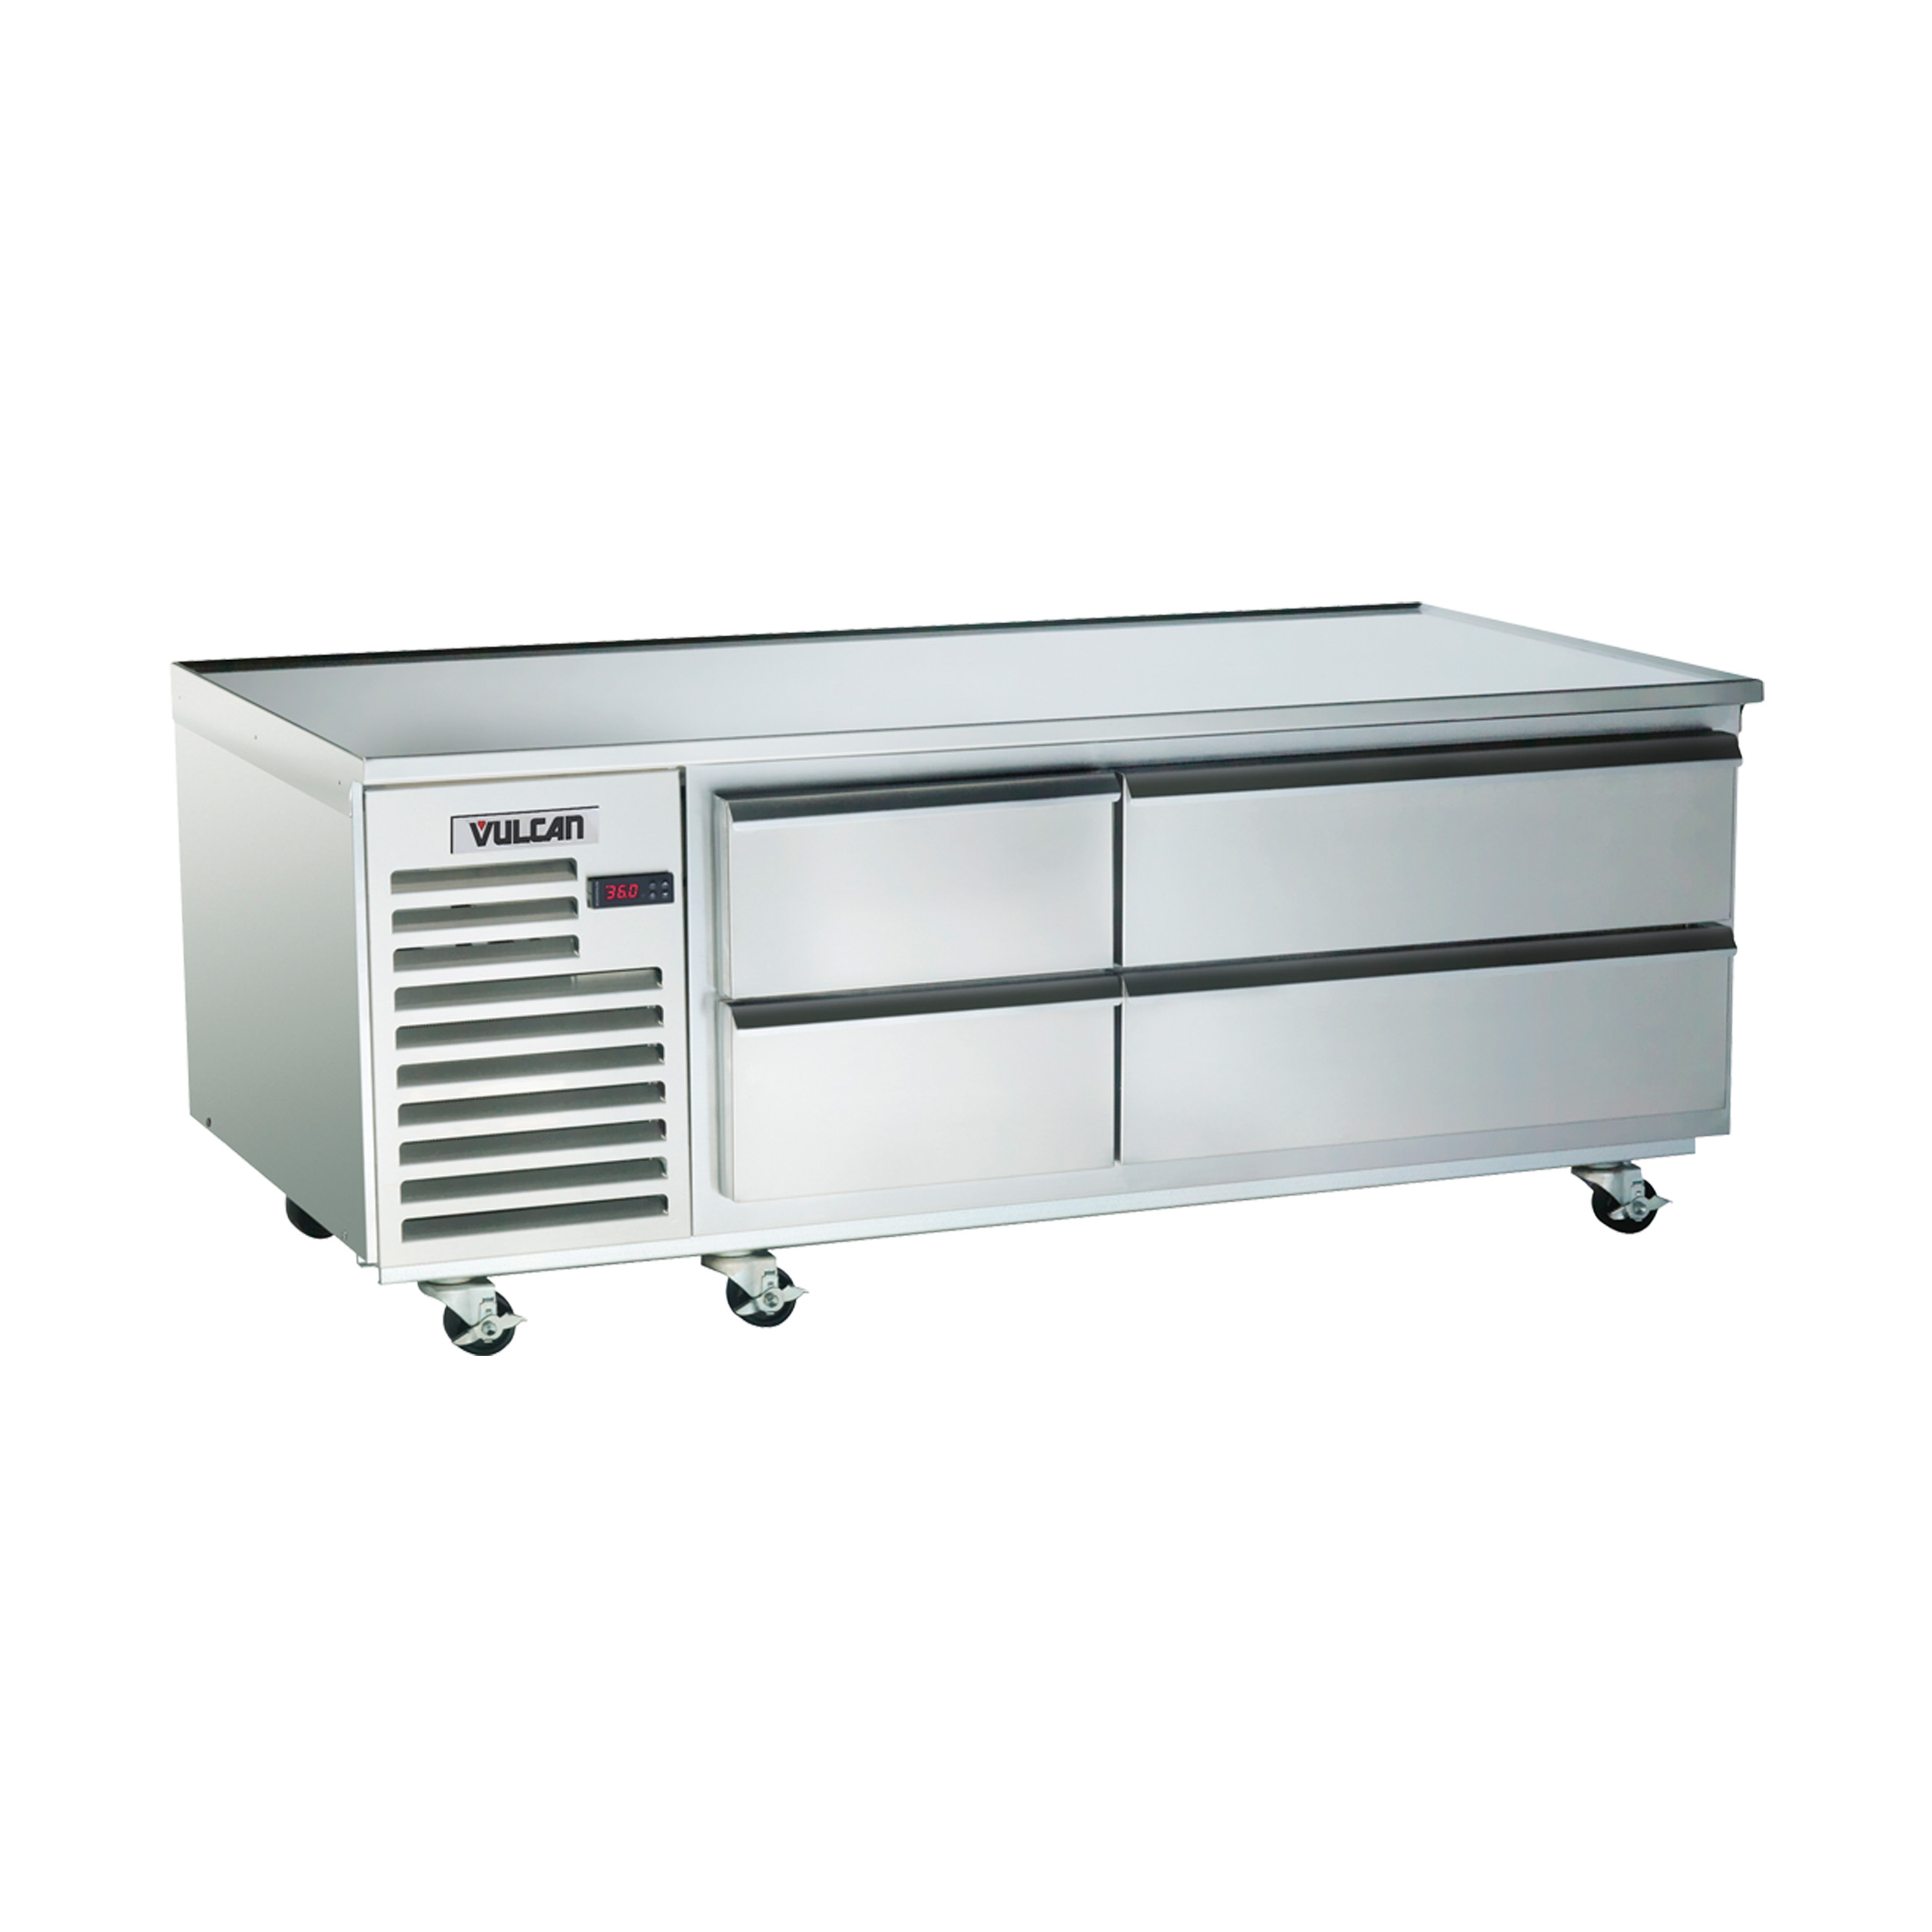 Vulcan VSC84 equipment stand, refrigerated base